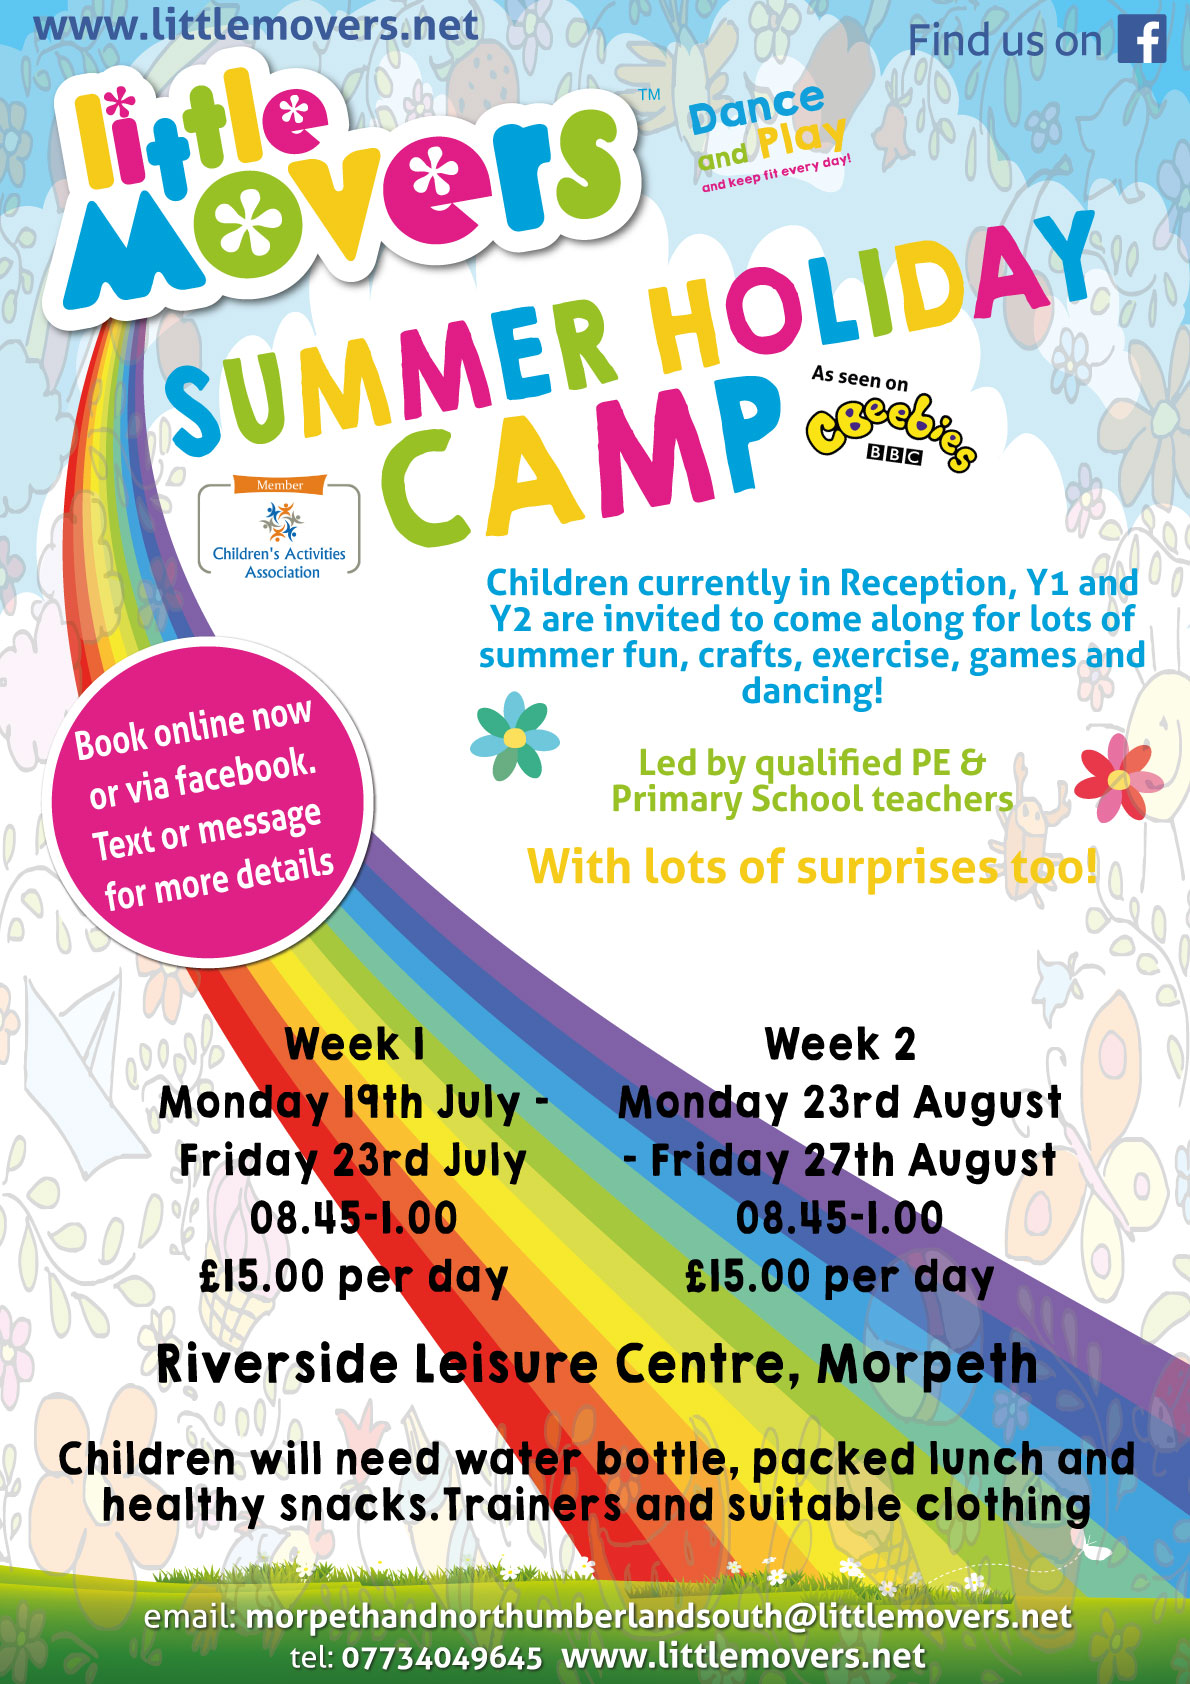 Little Movers Summer Holiday Camp